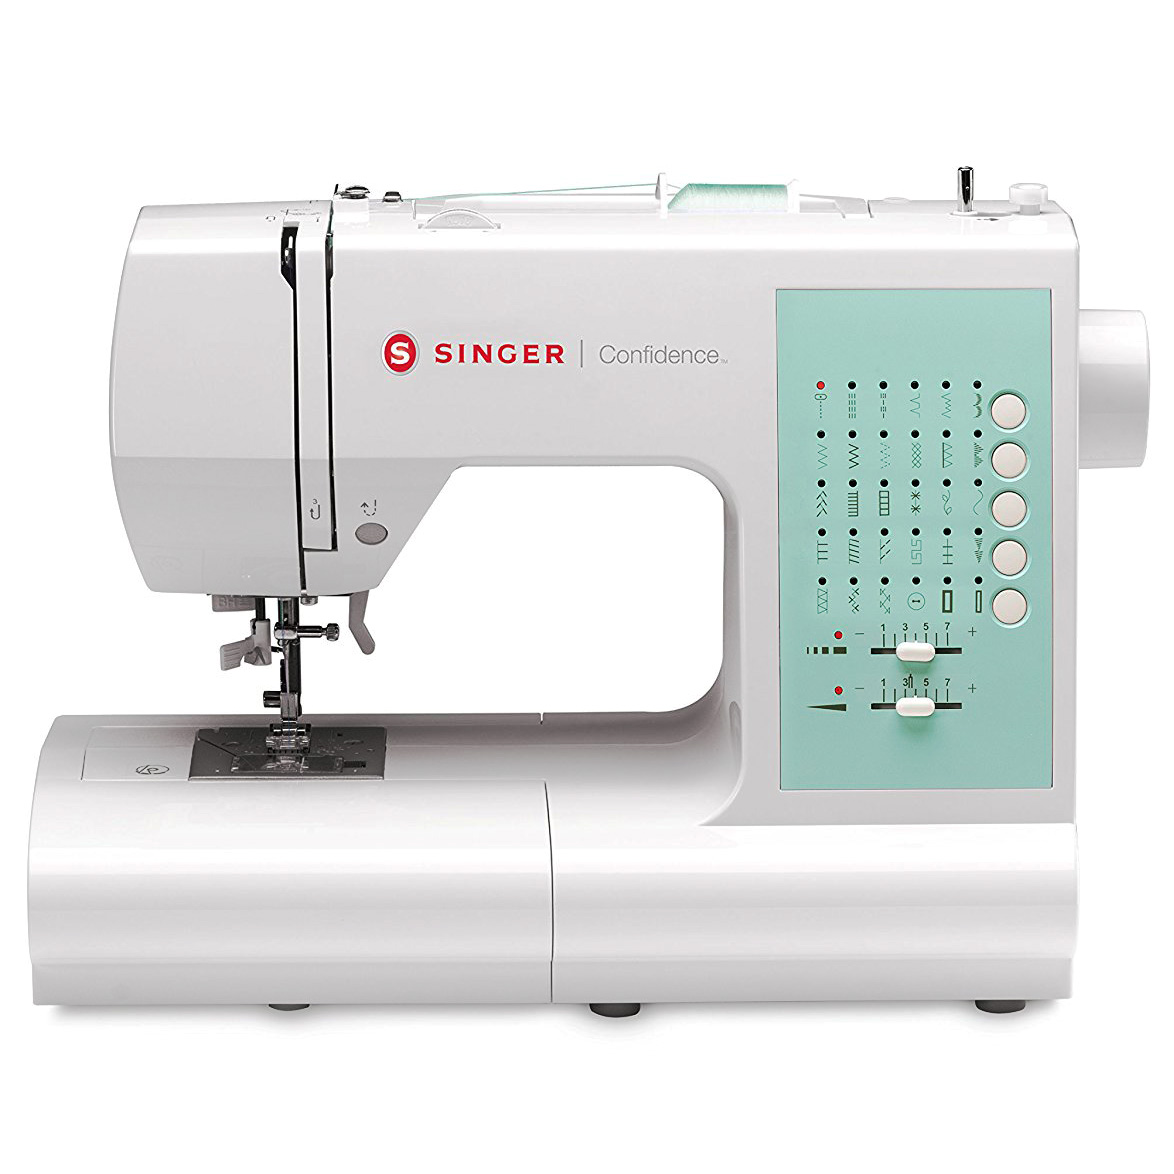 Singer Confidence Sewing Machine (7363)